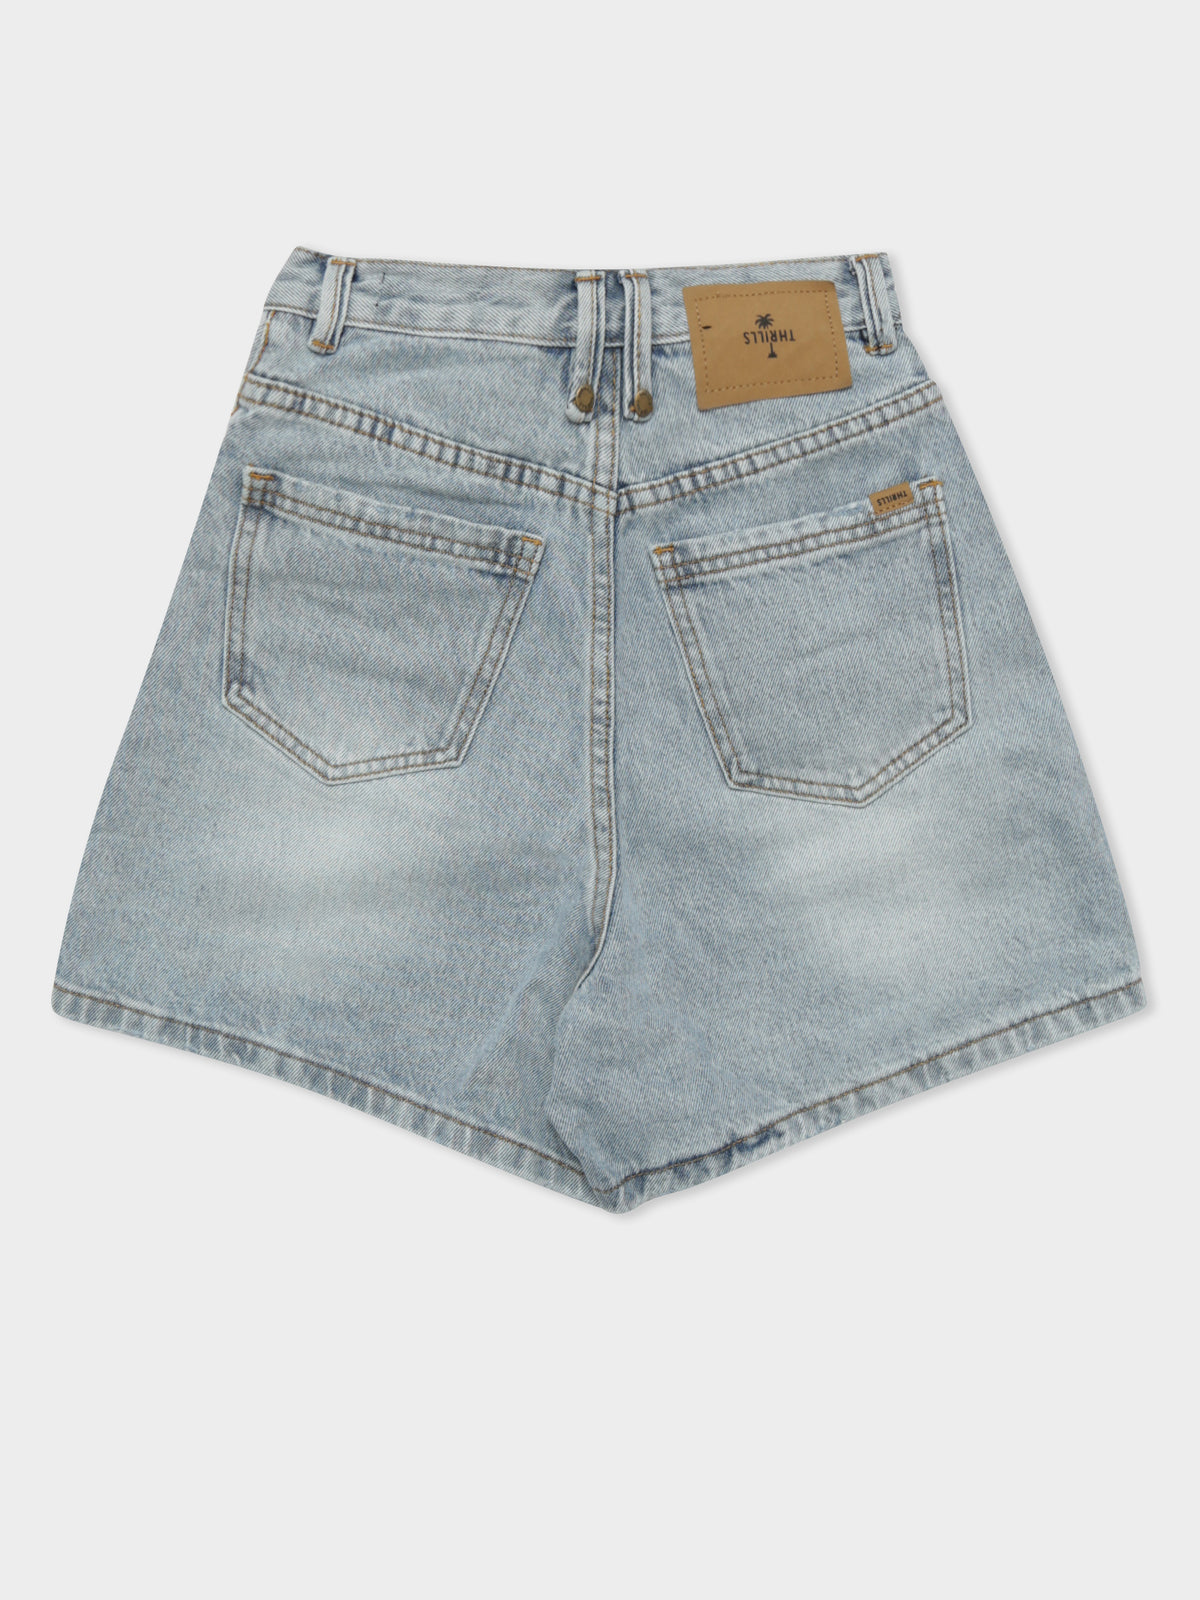 Koko Denim Shorts in Time Worn Blue